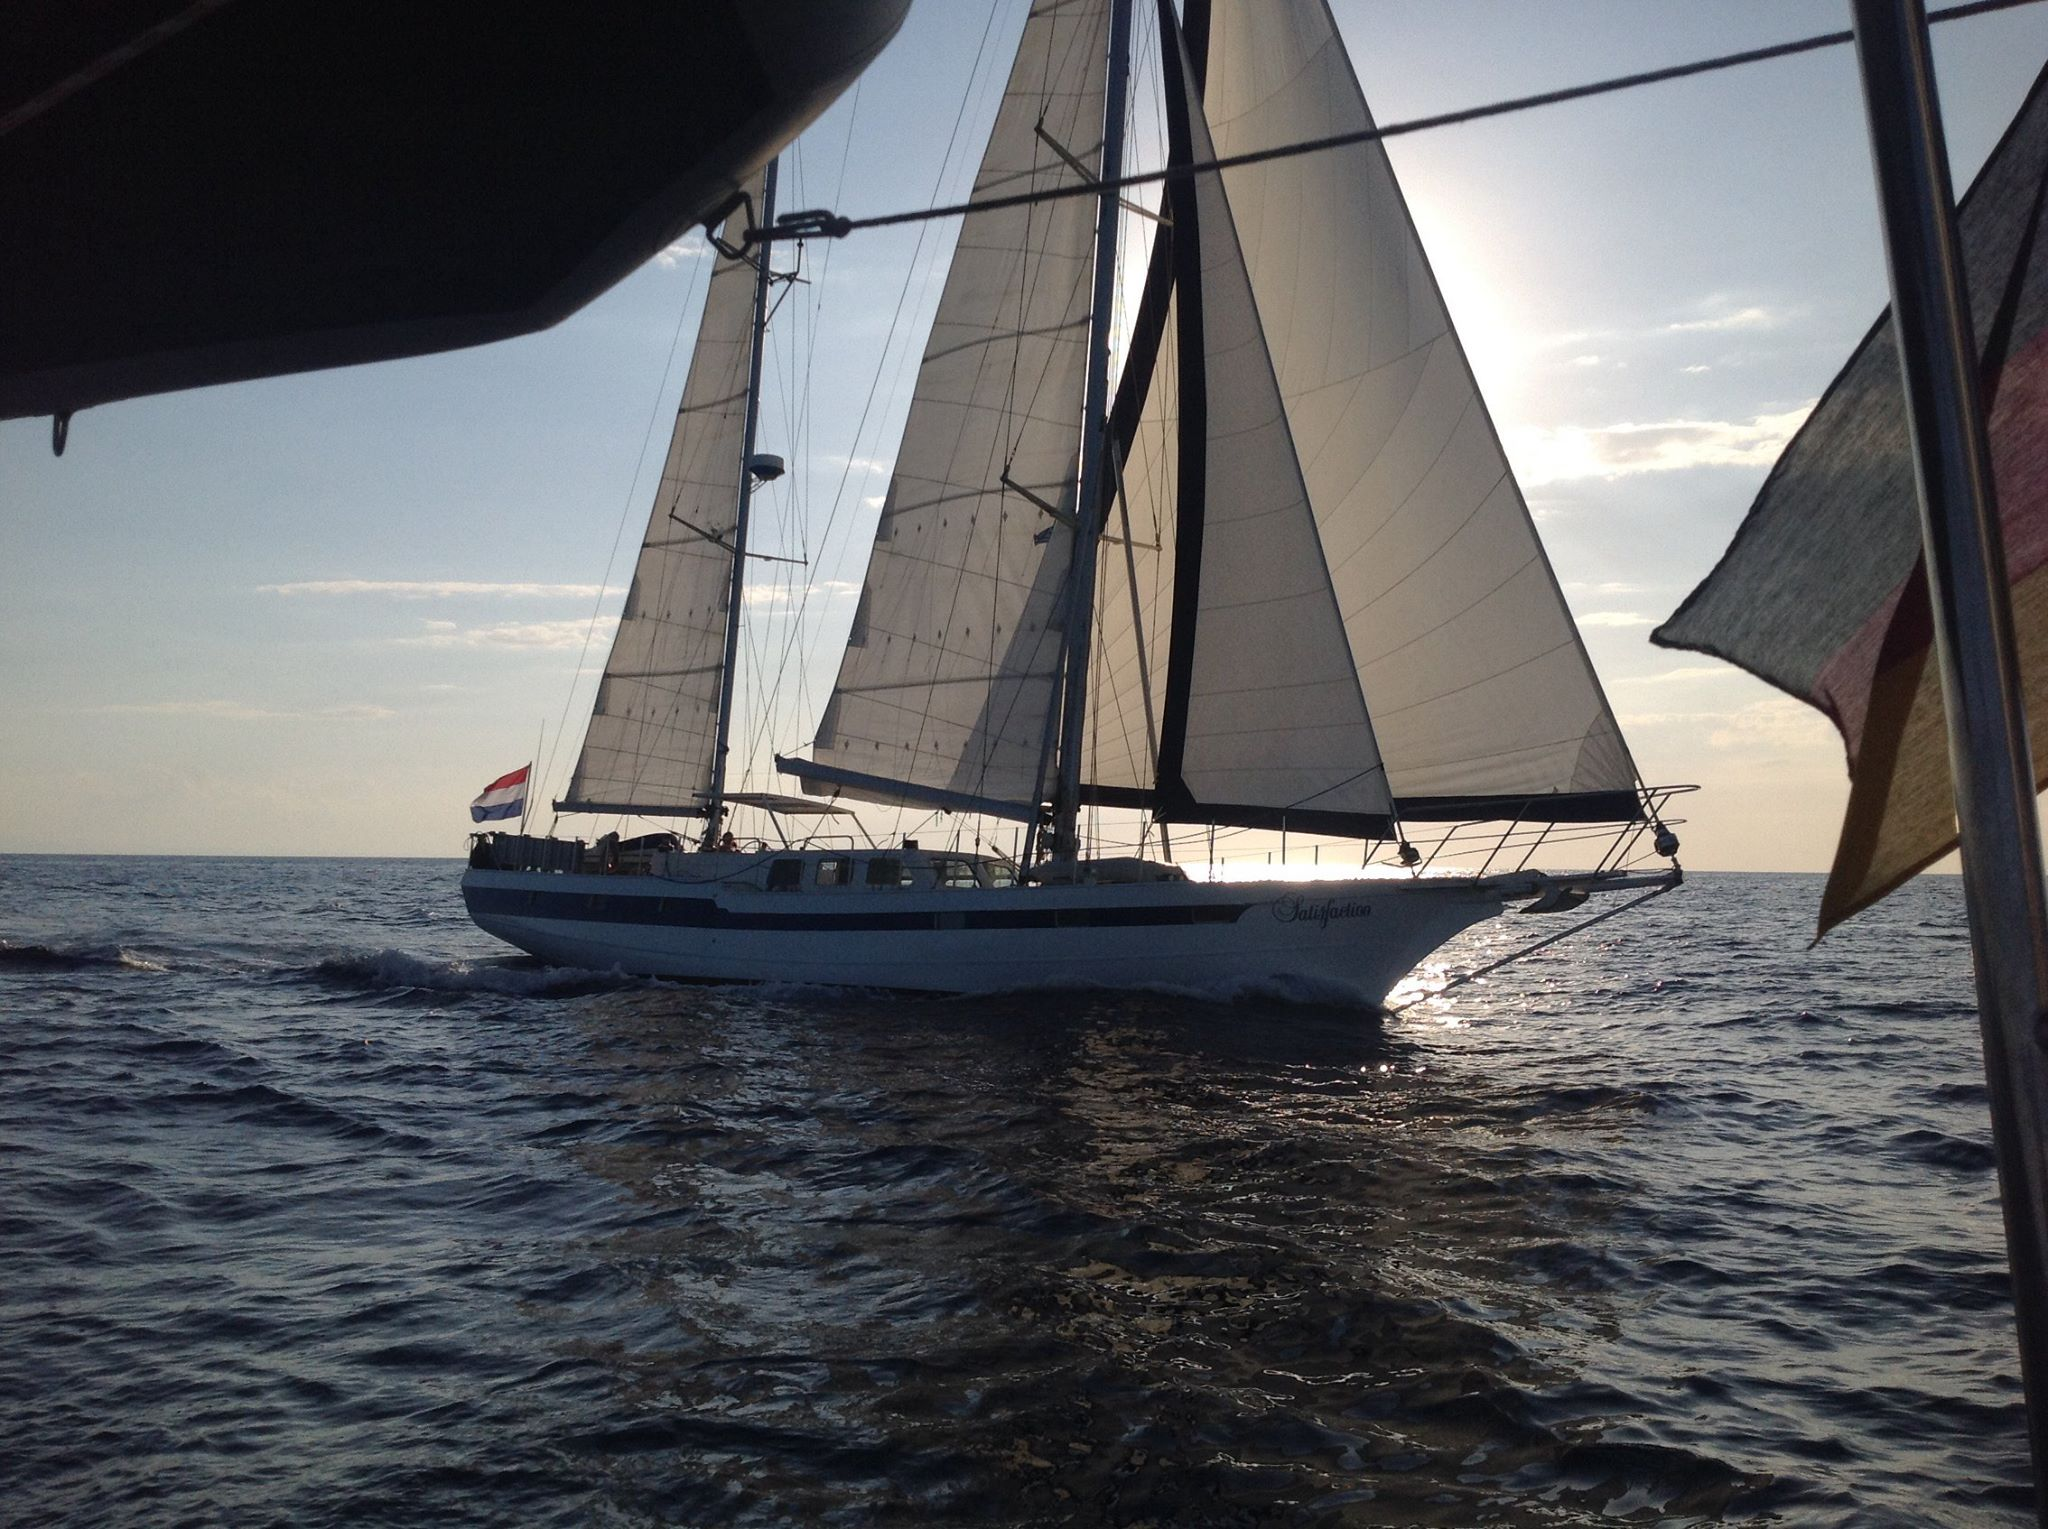 MAUSI - Sailing Yacht for Charter in Greece